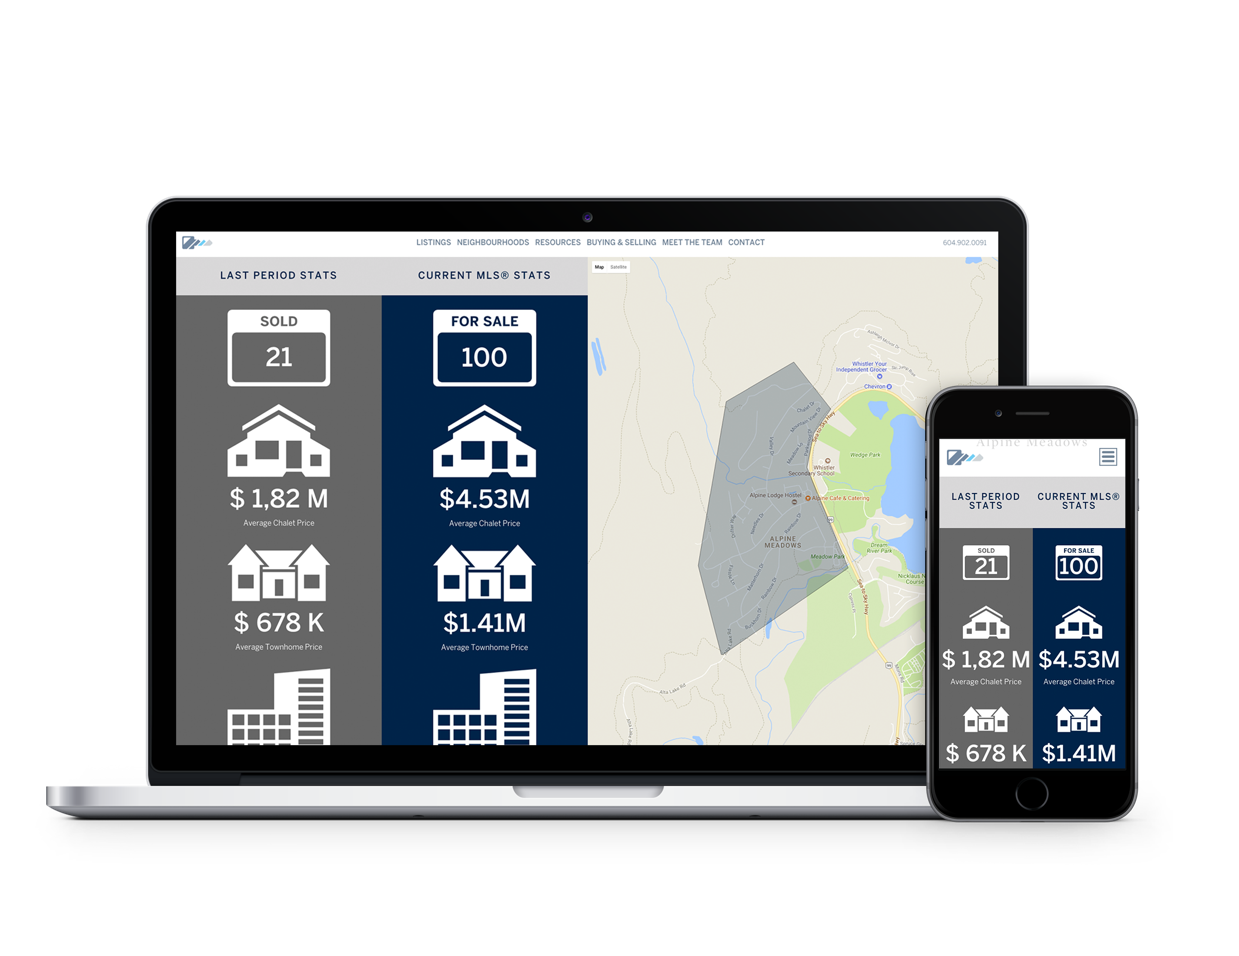 Real estate agent custom web design and branding, user experience and design